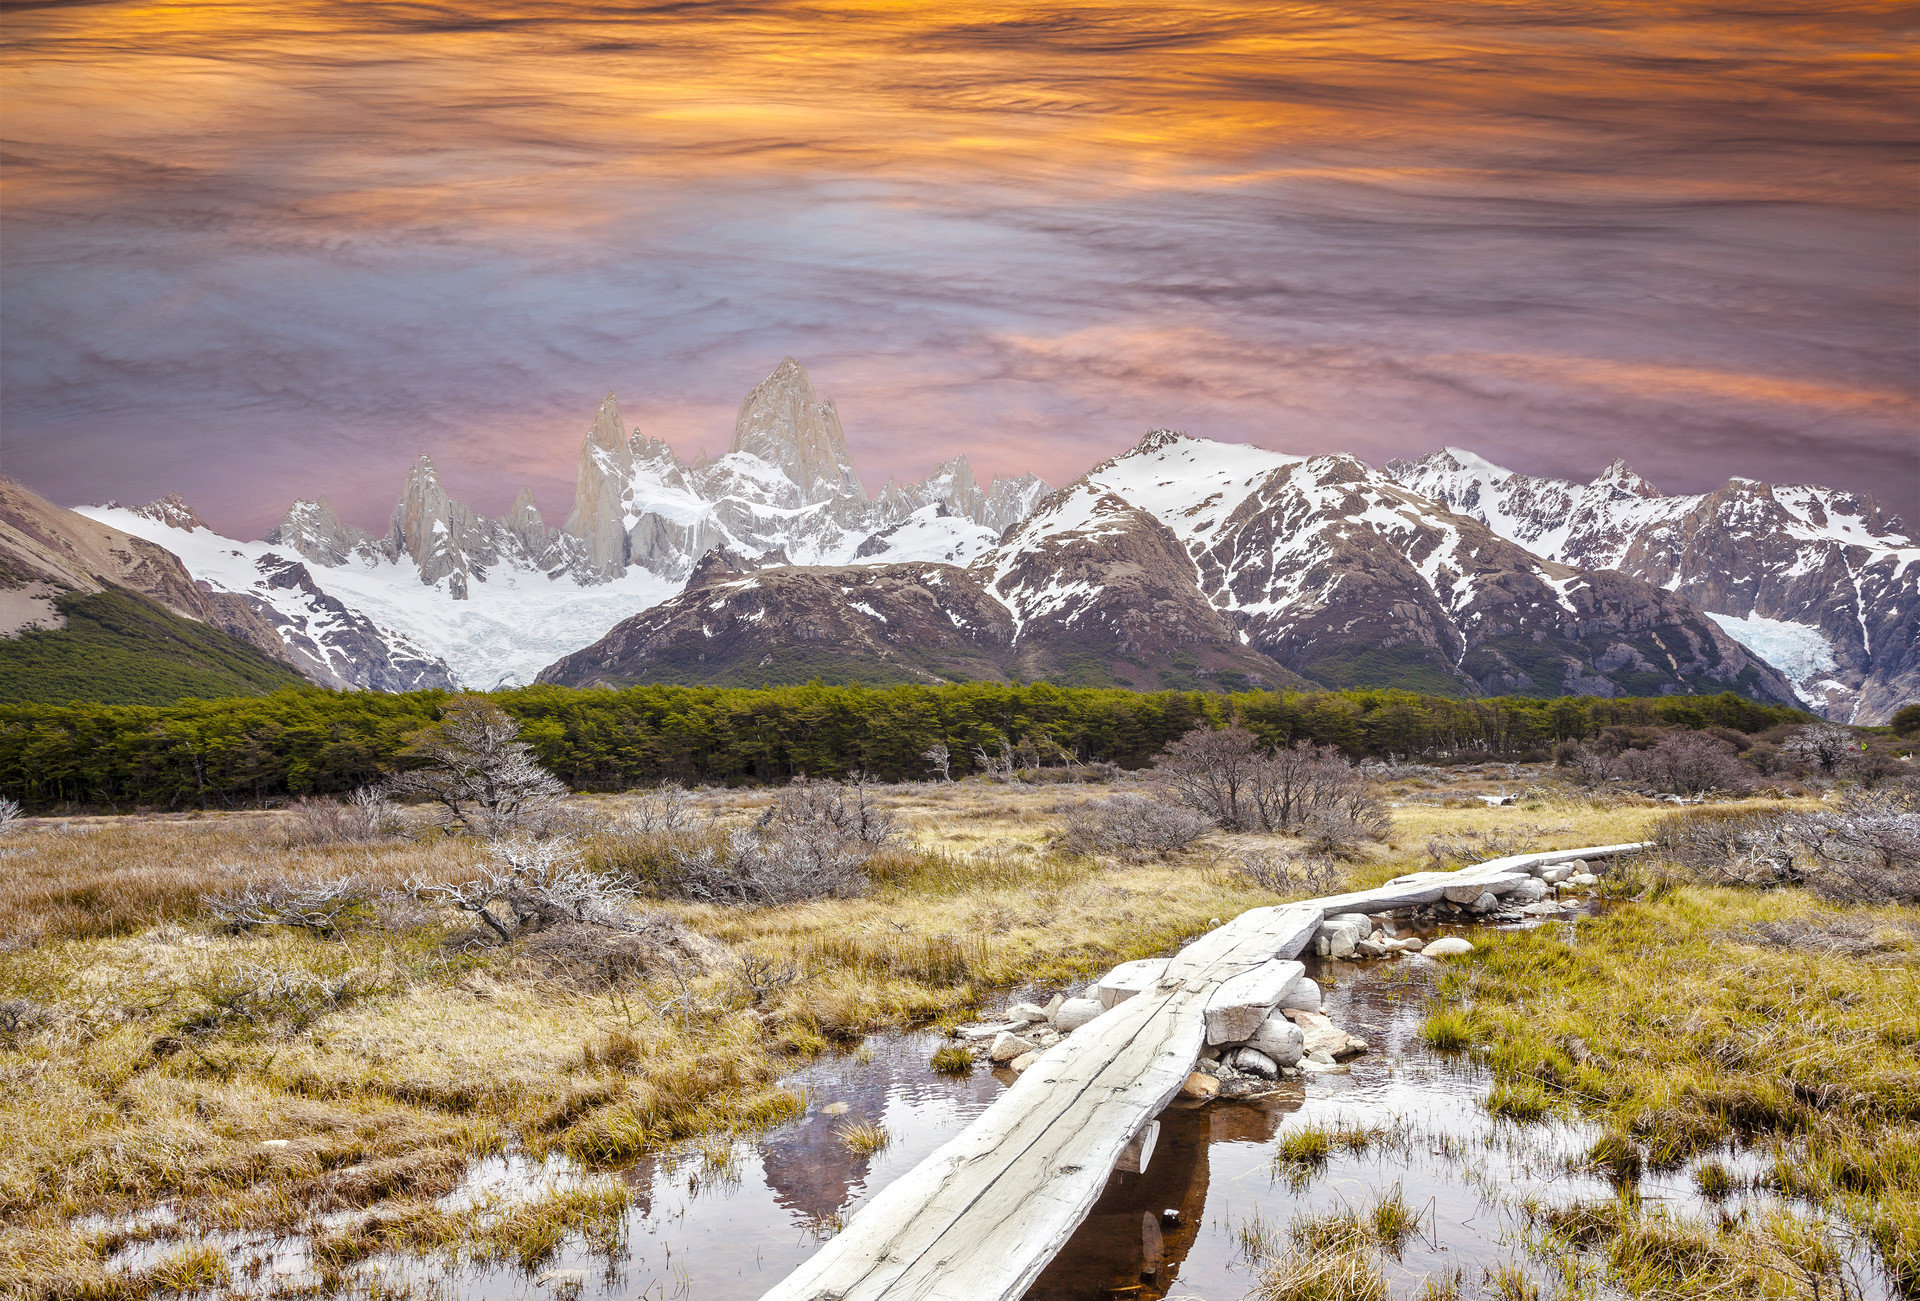 Jetsetter Guides Outdoors + Adventure Packing Tips Travel Tips Trip Ideas grass outdoor mountain mountainous landforms Nature landform wilderness geographical feature snow weather mountain range cloud loch valley Winter landscape season River morning plateau tundra reflection Lake autumn hillside highland